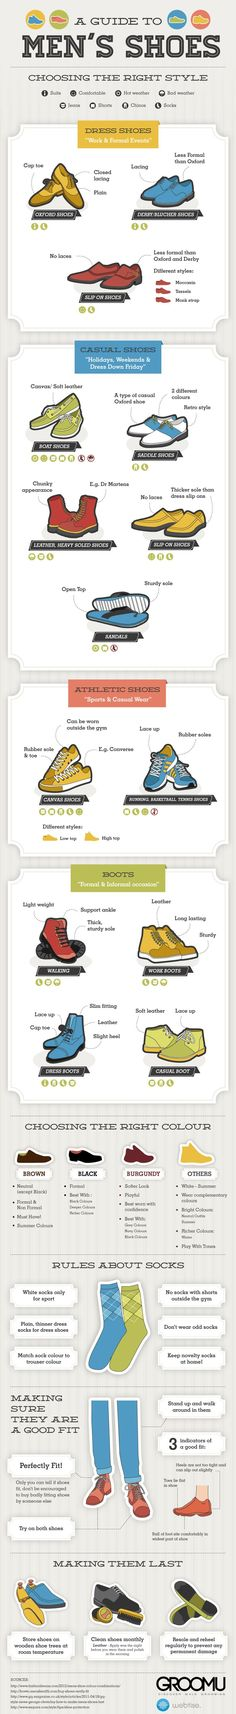 Total shoe guide, with socks and wardrobe suggestions